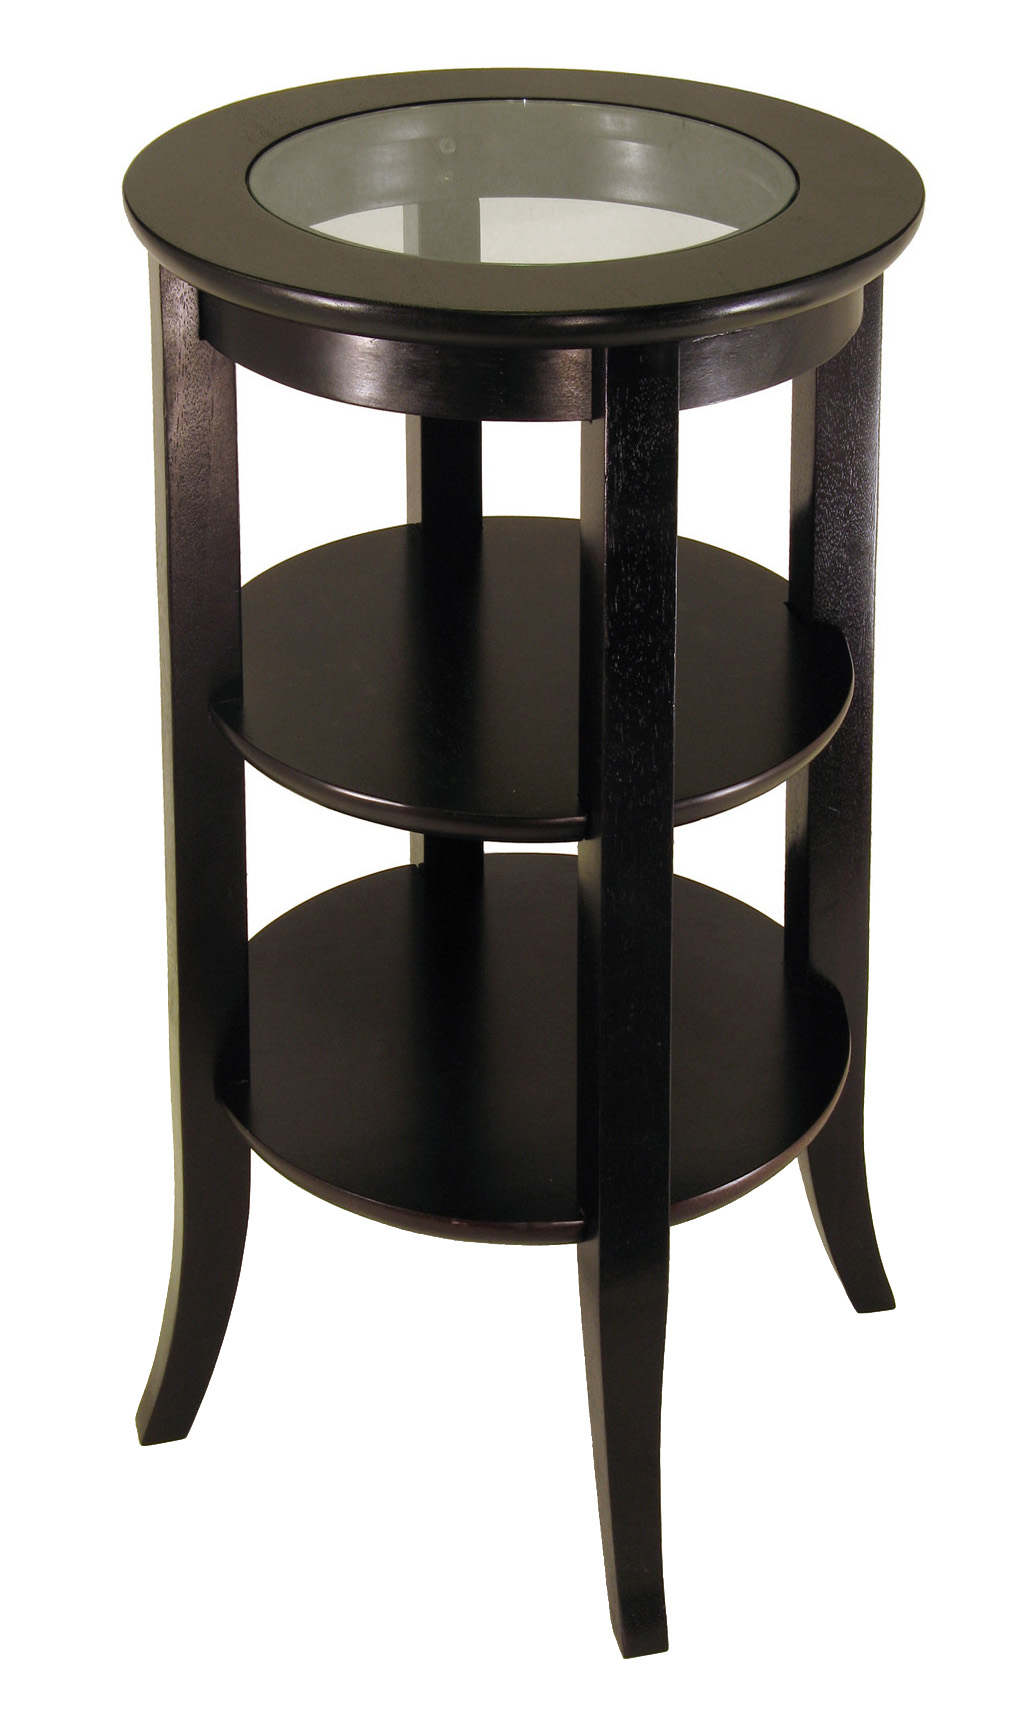 winsome sasha round accent table cappucino genoa inset glass two shelves large outdoor cover red dining room chairs pottery barn kitchen walnut lighting lamps silver clock